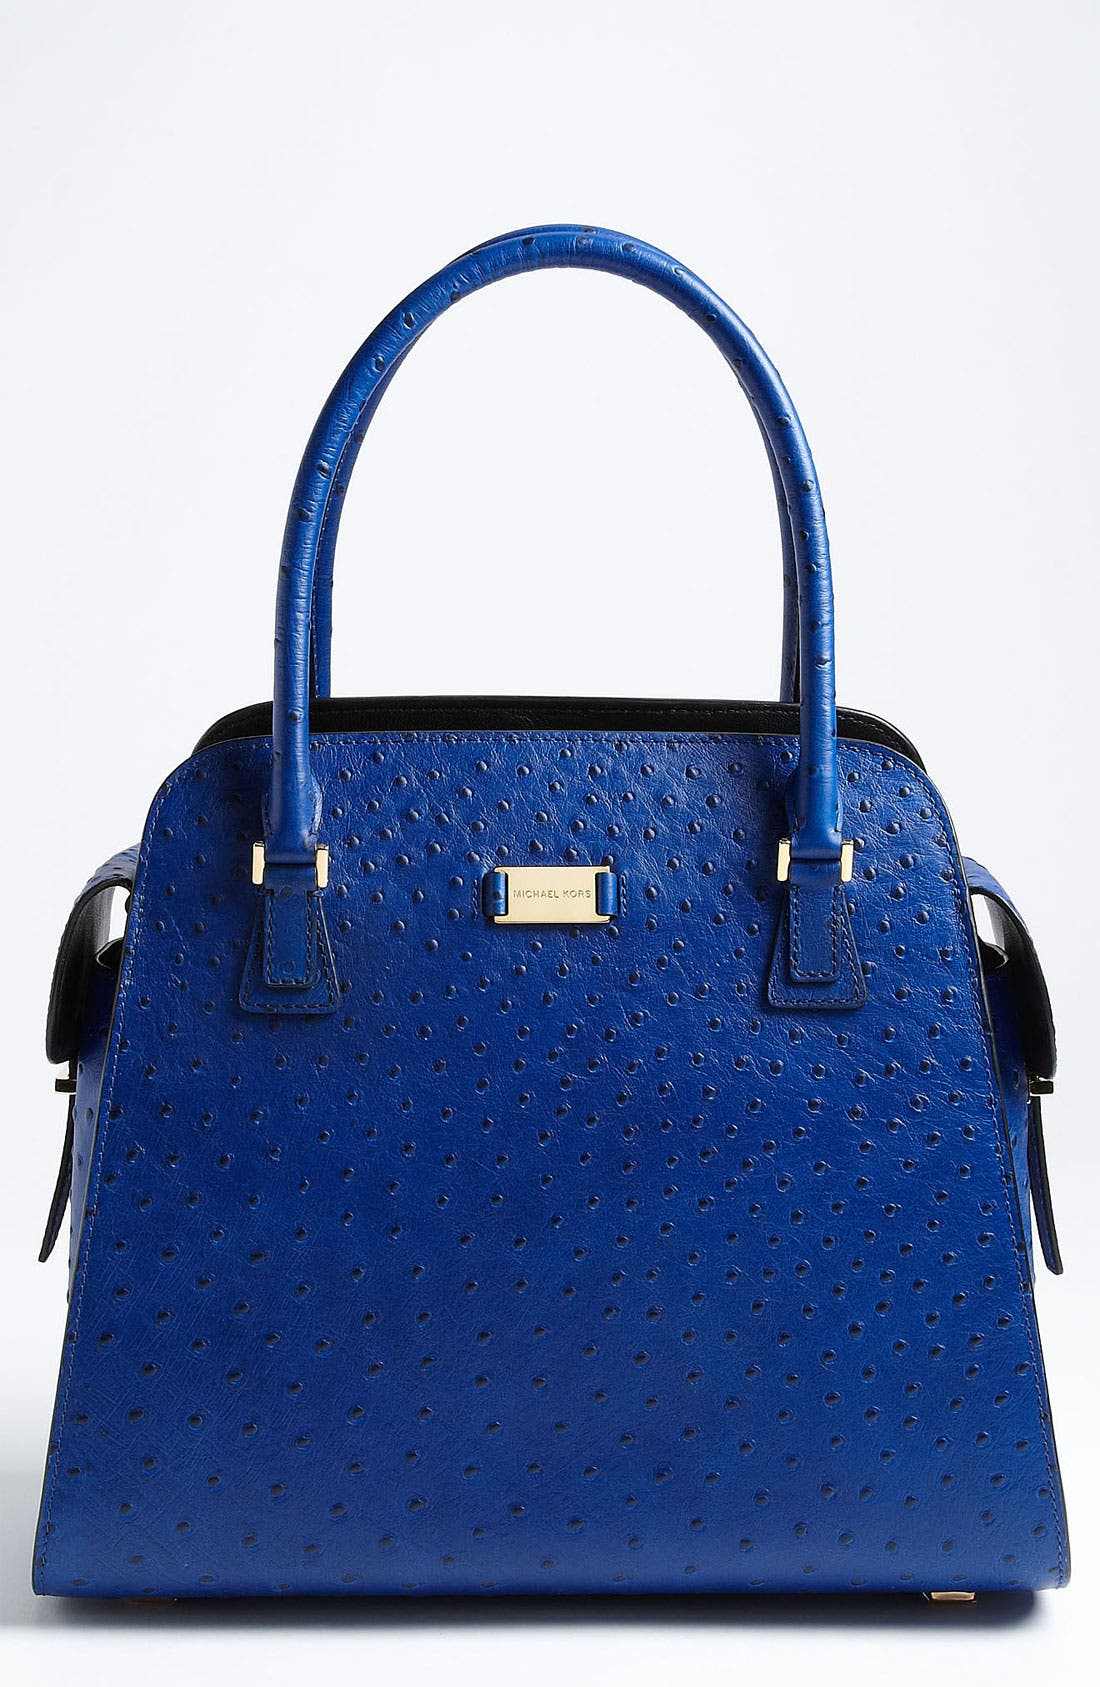 Alternate Image 1 Selected - Michael Kors 'Gia' Ostrich Embossed Satchel